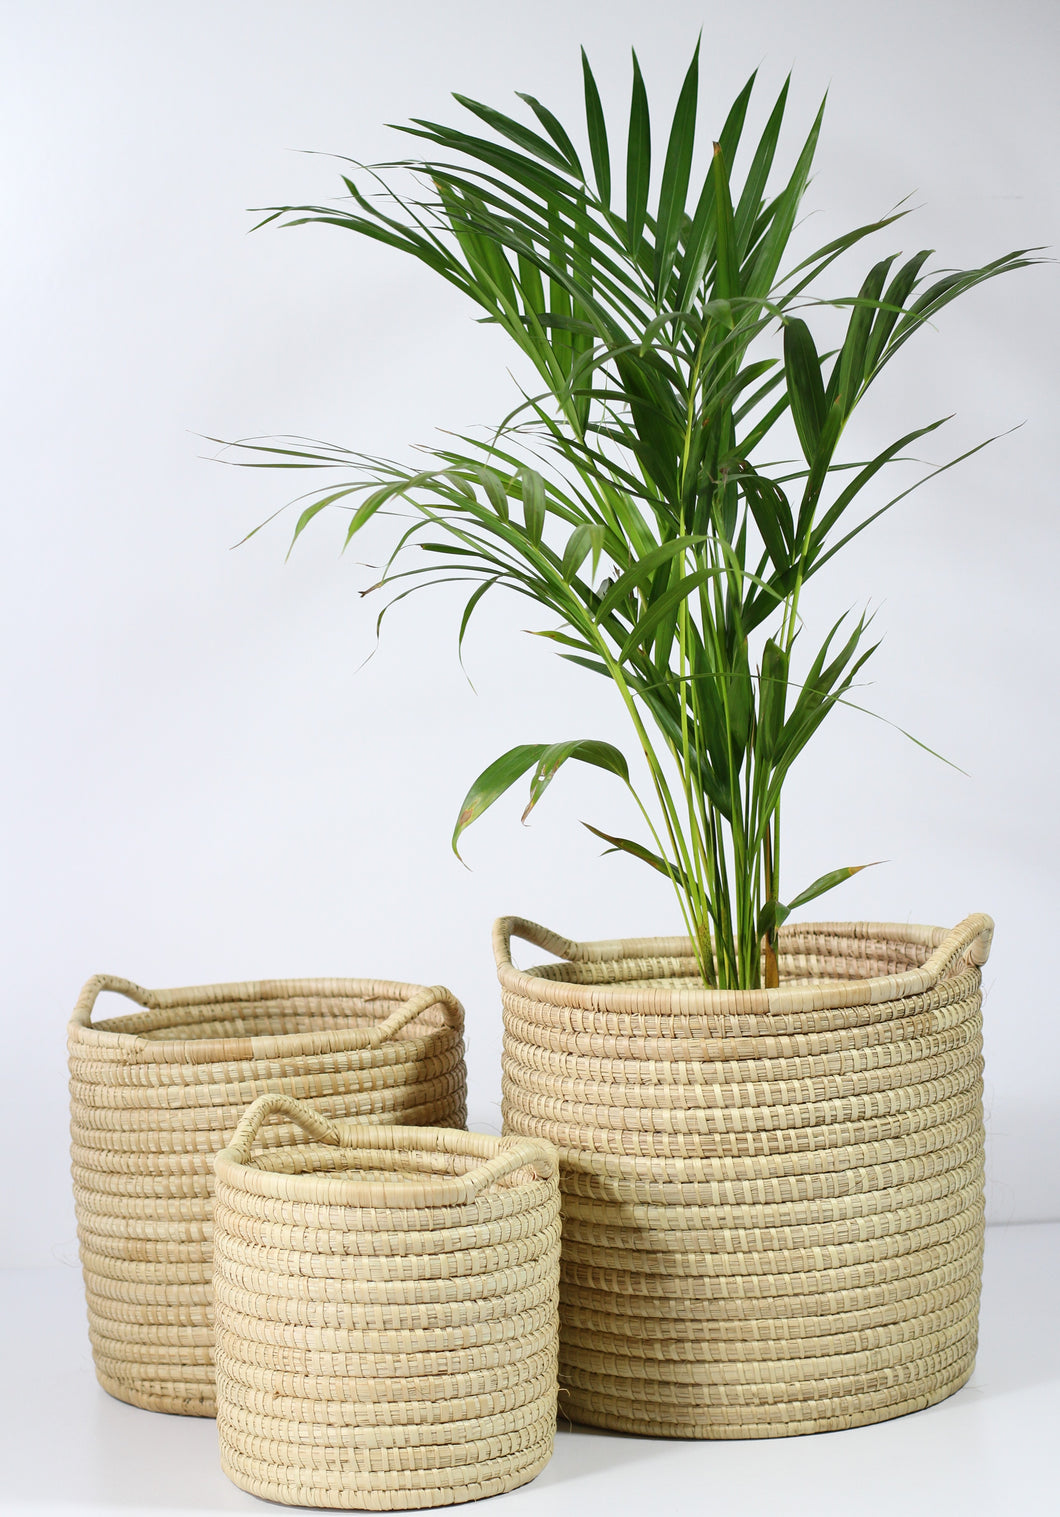 Basotho Baskets  [bah-soo-too] - Co-Lab SA